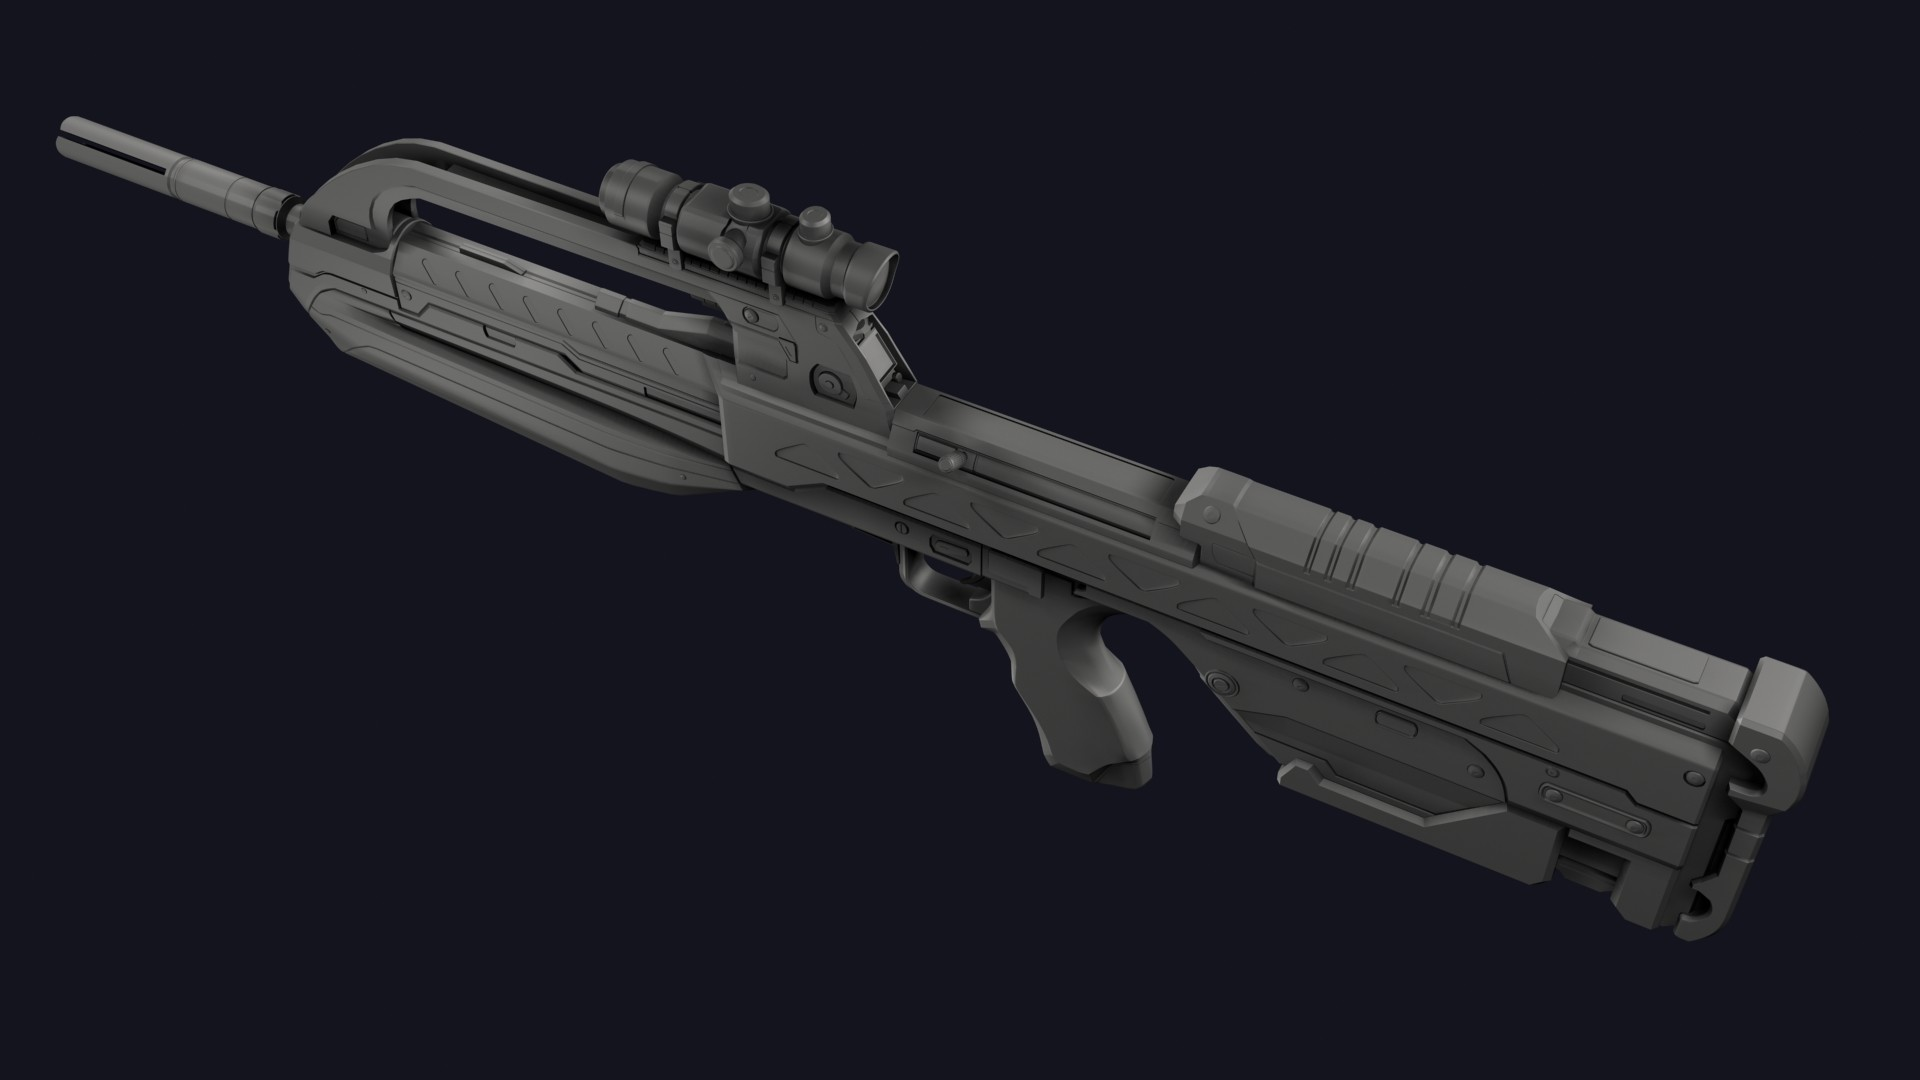 Jared Harris Halo 2 Anniversary Br 55 Battle Rifle